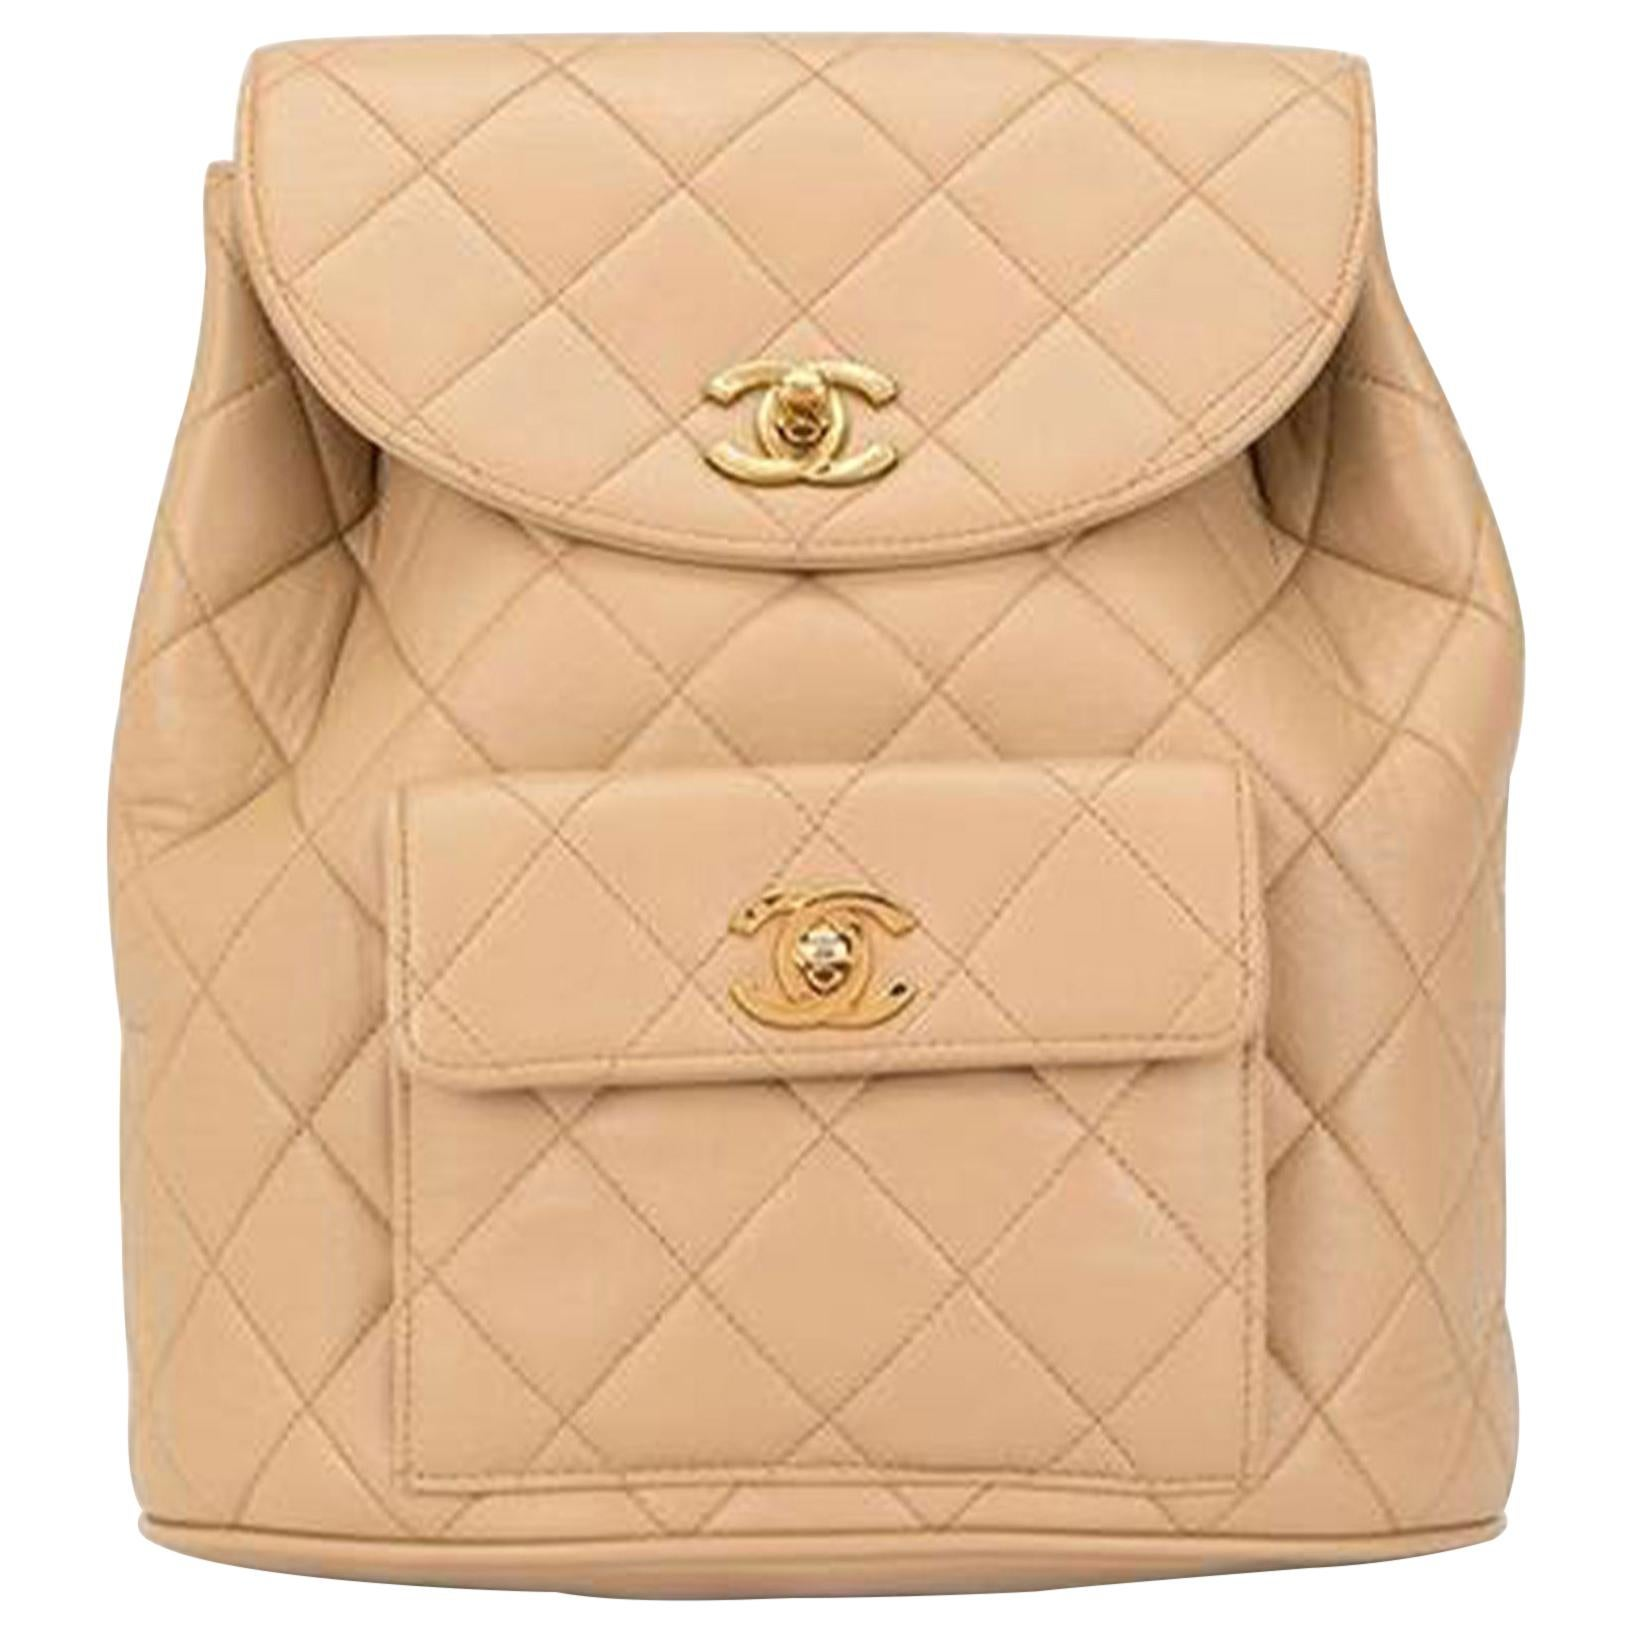 Chanel Vintage Quilted Lambskin Duma Cc Logo Beige Leather Backpack